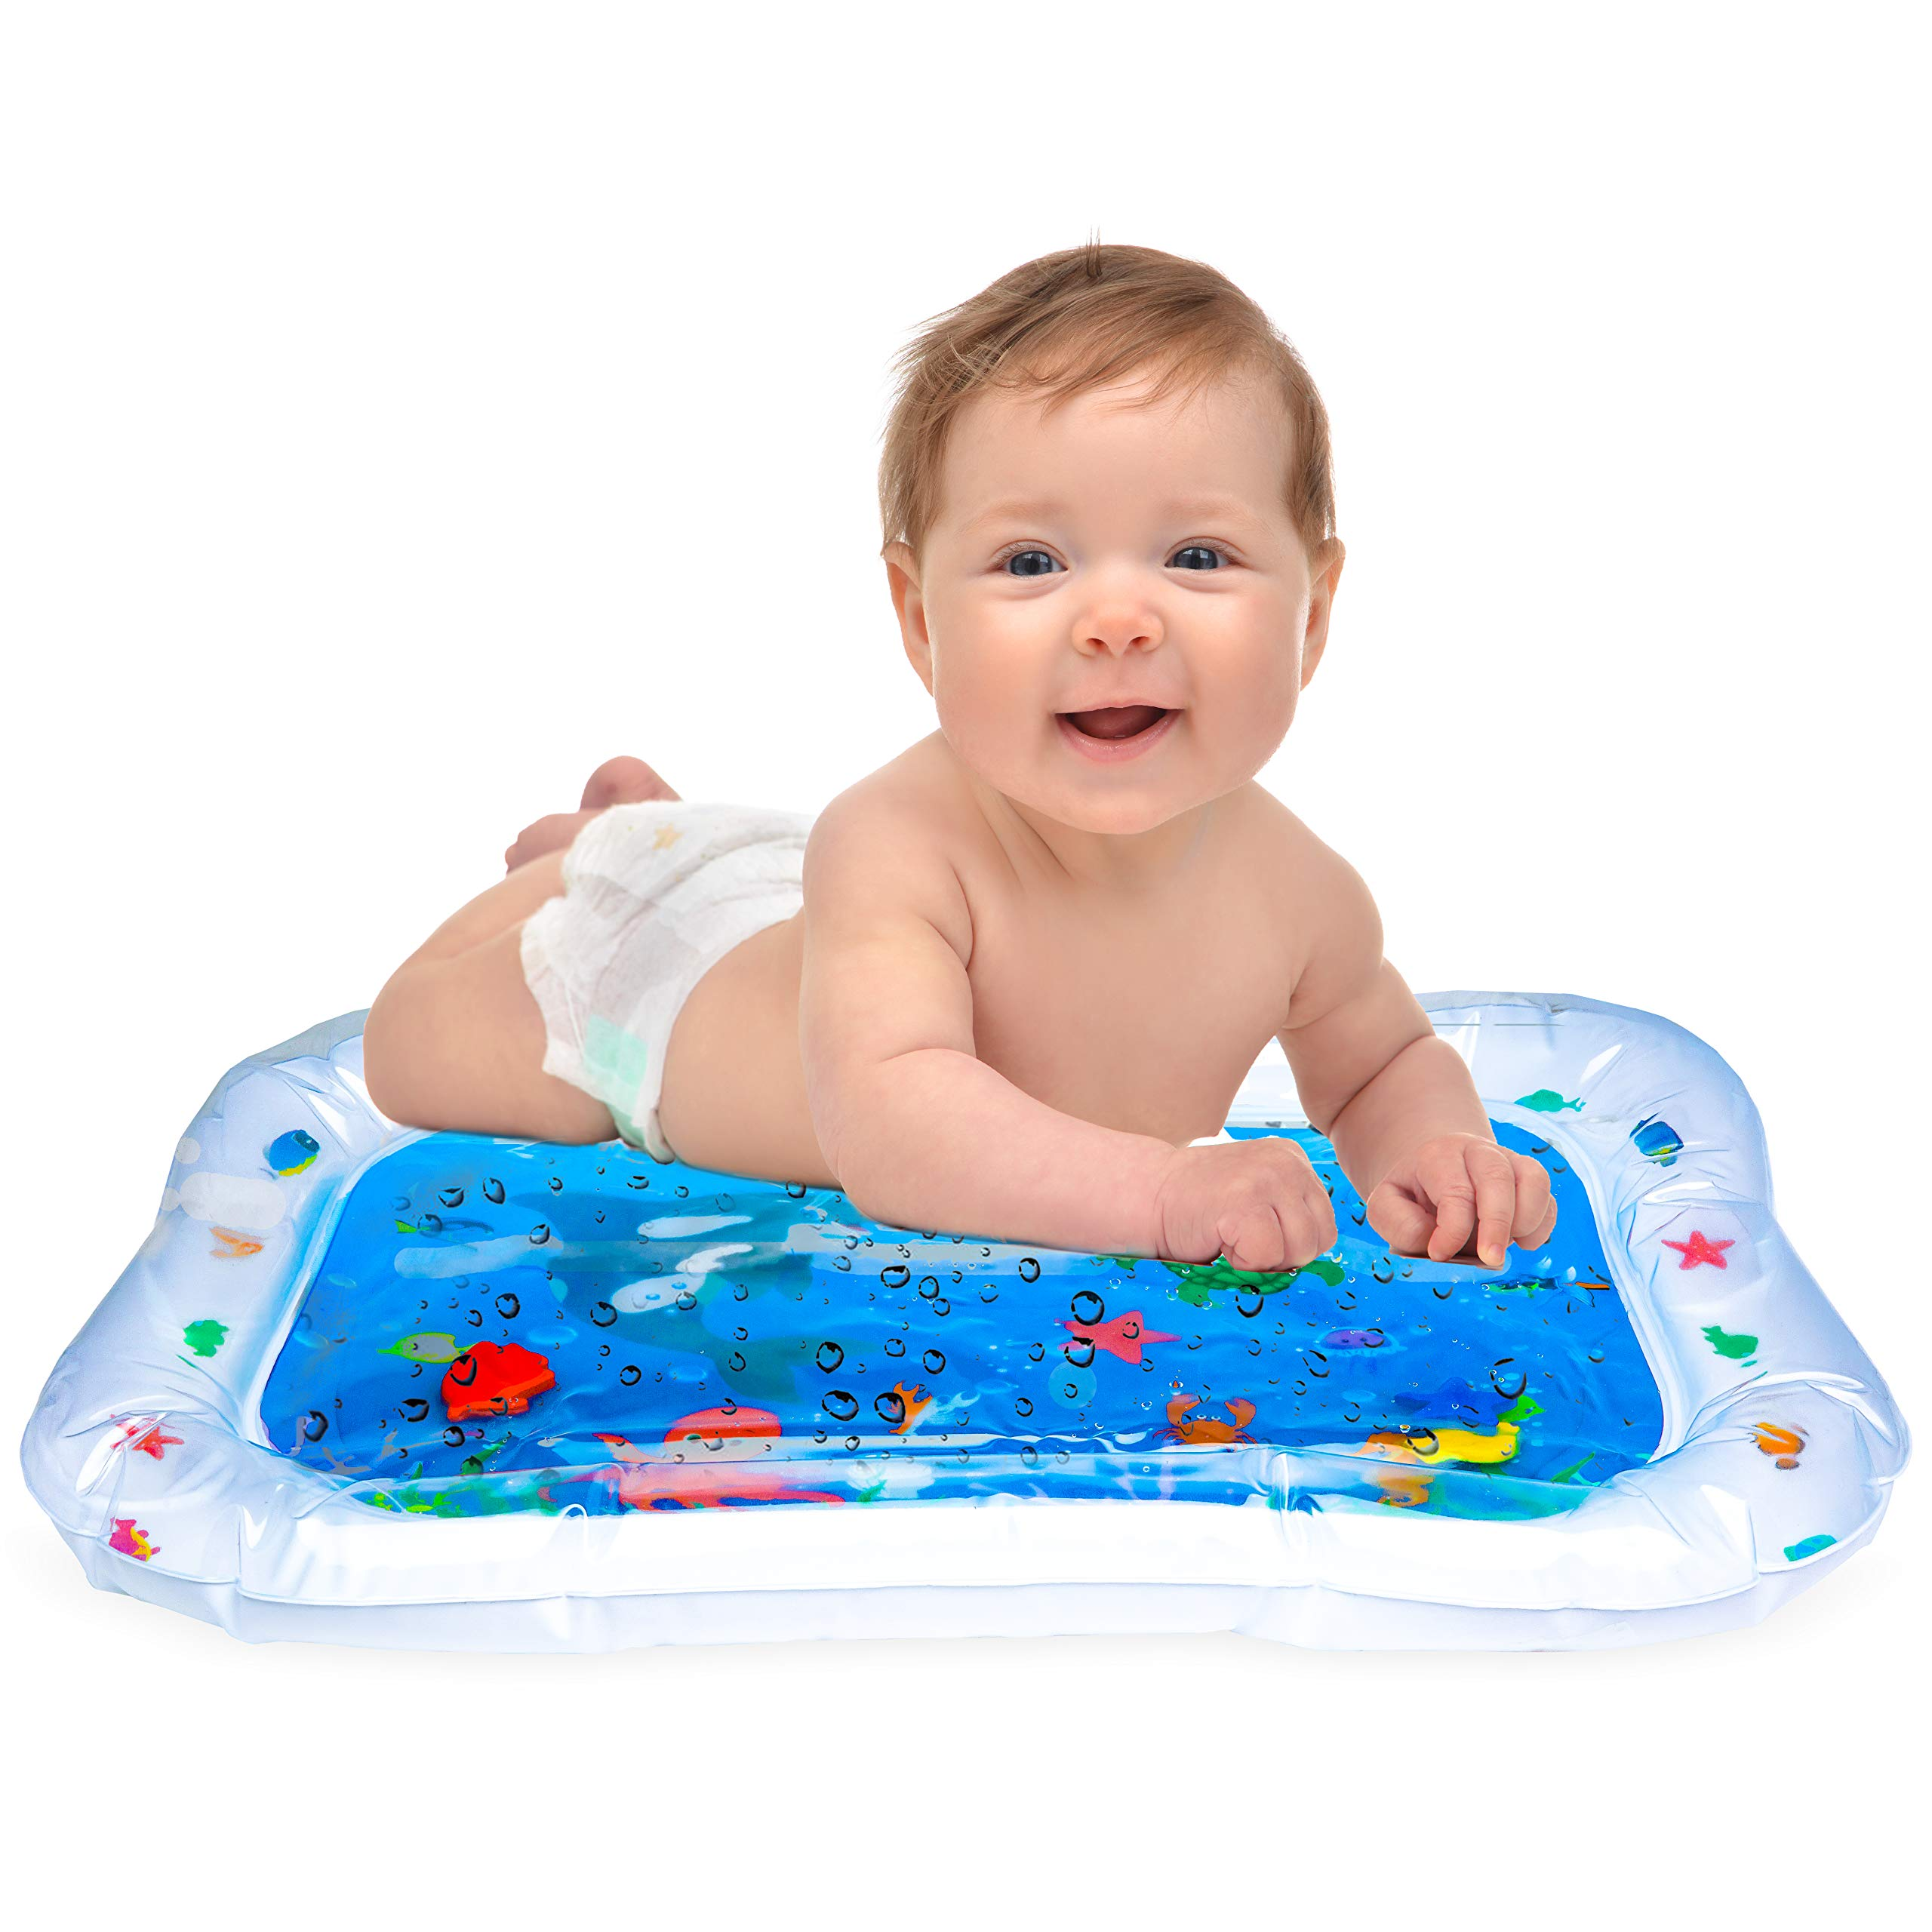 Hoovy Baby Inflatable Water Play Mat: Fun, Indoor & Outdoor Pad for Babies & Infants   Great Tummy Time Activity, Promotes Visual Stimulation, Movement & Motor Skills   Easy to Inflate & Deflate